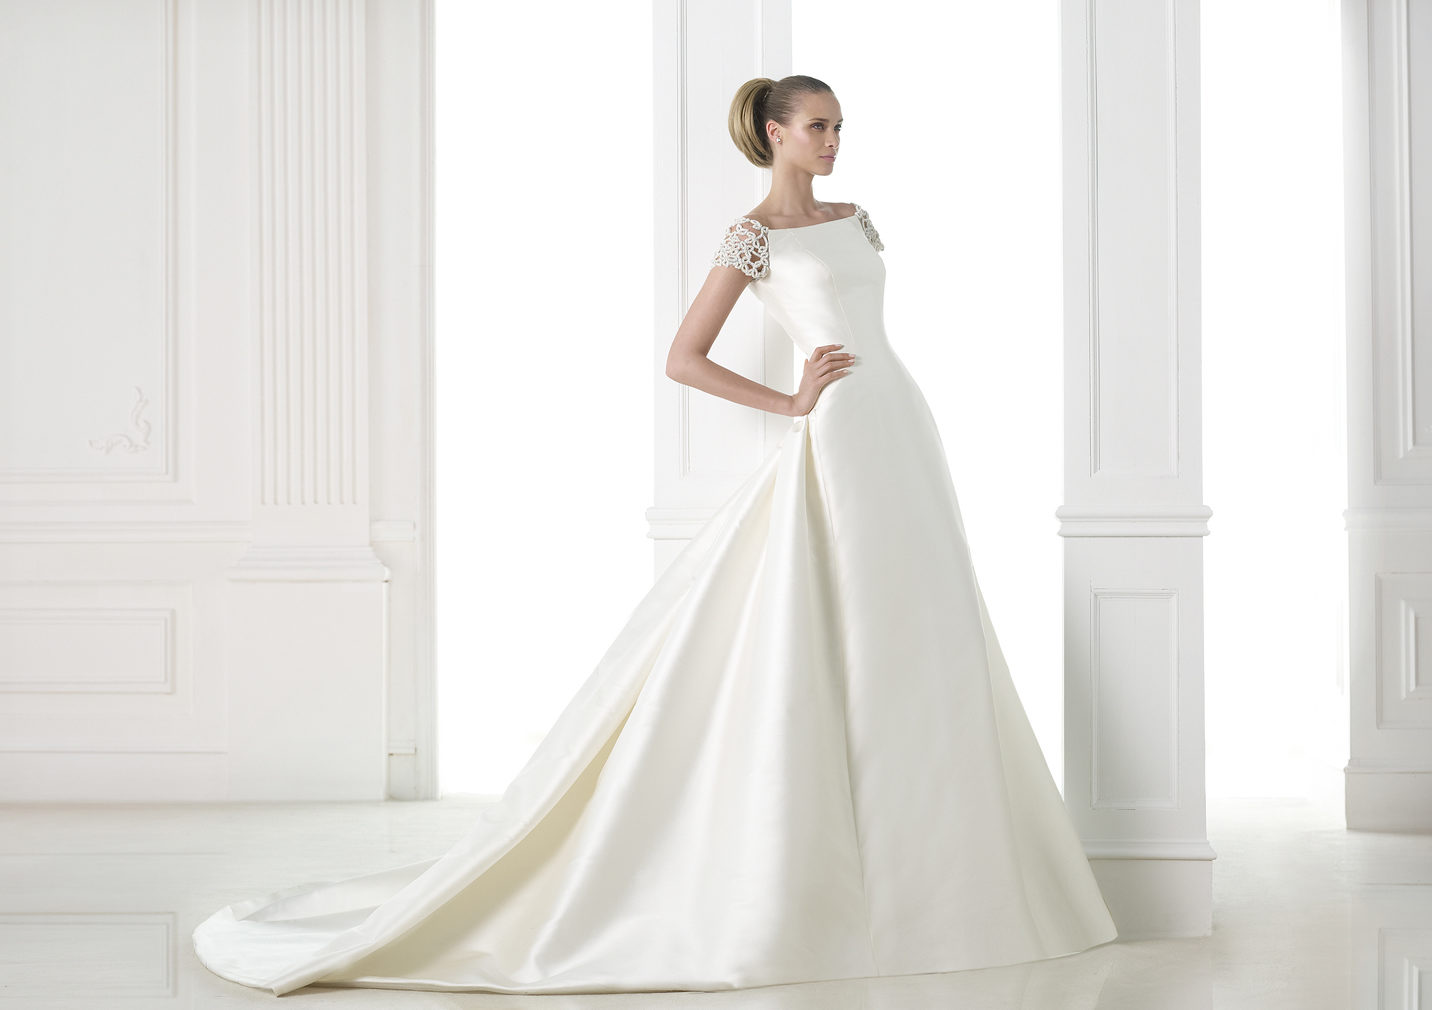 All About Weddings! Themes, Dresses